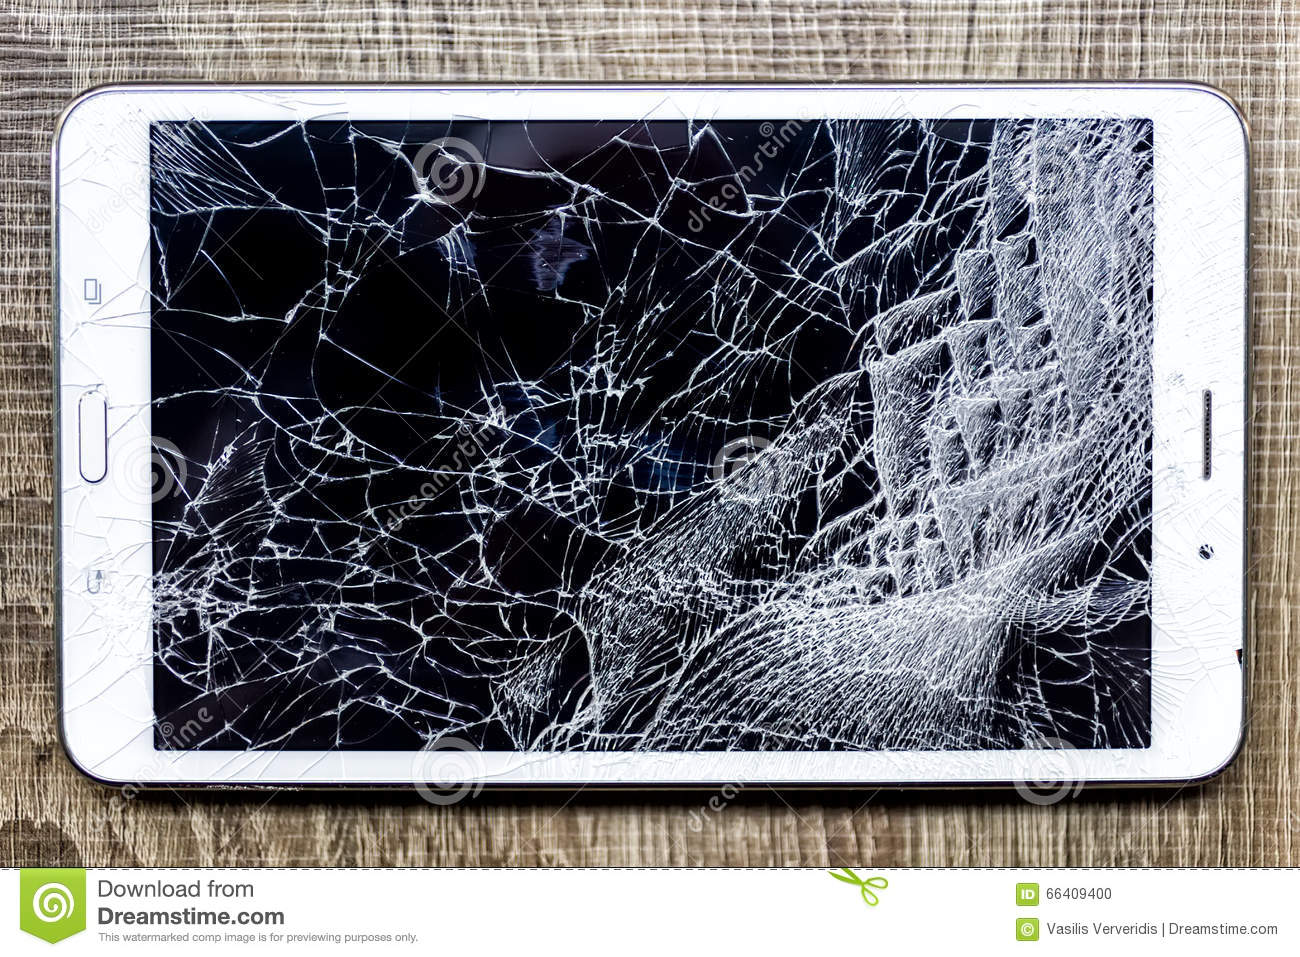 Broken glass of tablet on the grunge wood. Selective focus. Low